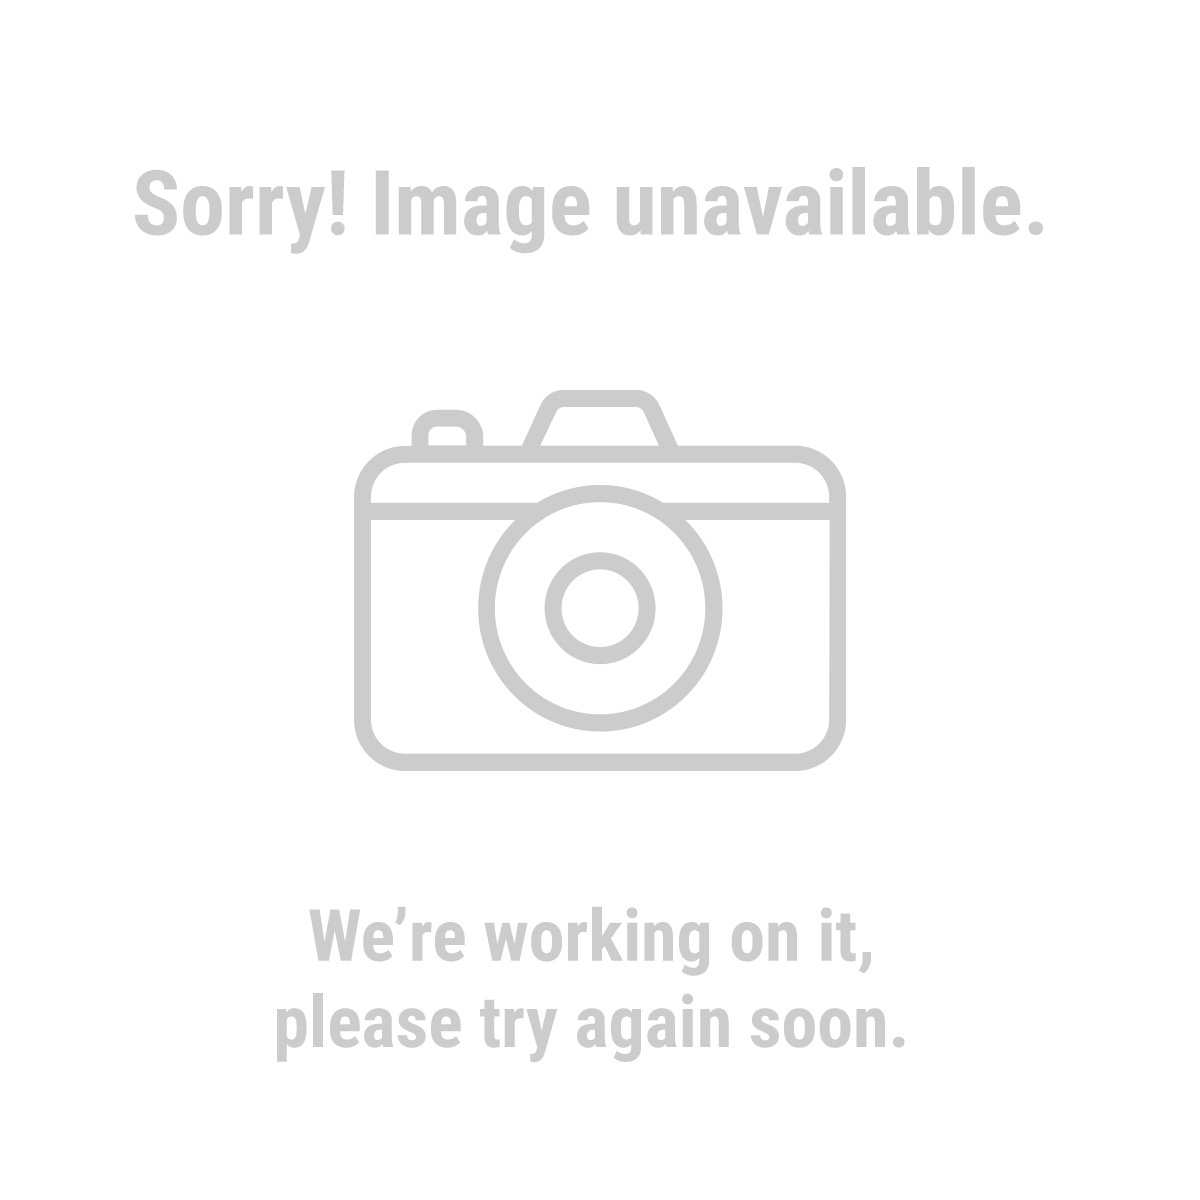 1 HP 4 in  x 6 in  Horizontal/Vertical Metal Cutting Band Saw